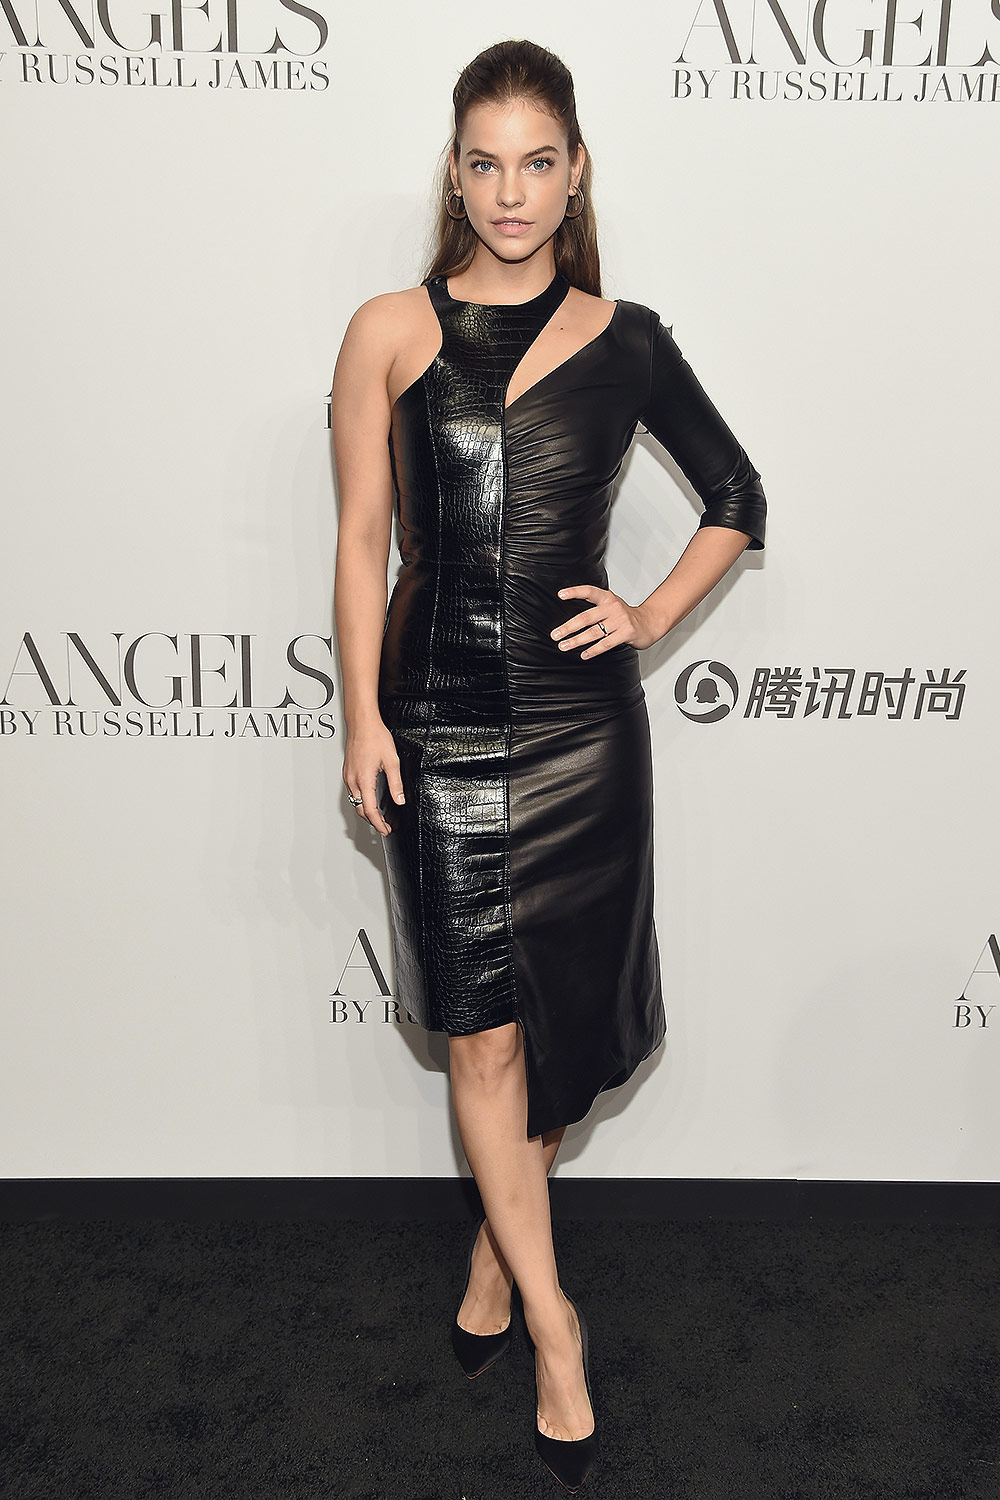 Barbara Palvin attends ANGELS by Russel James Book Launch